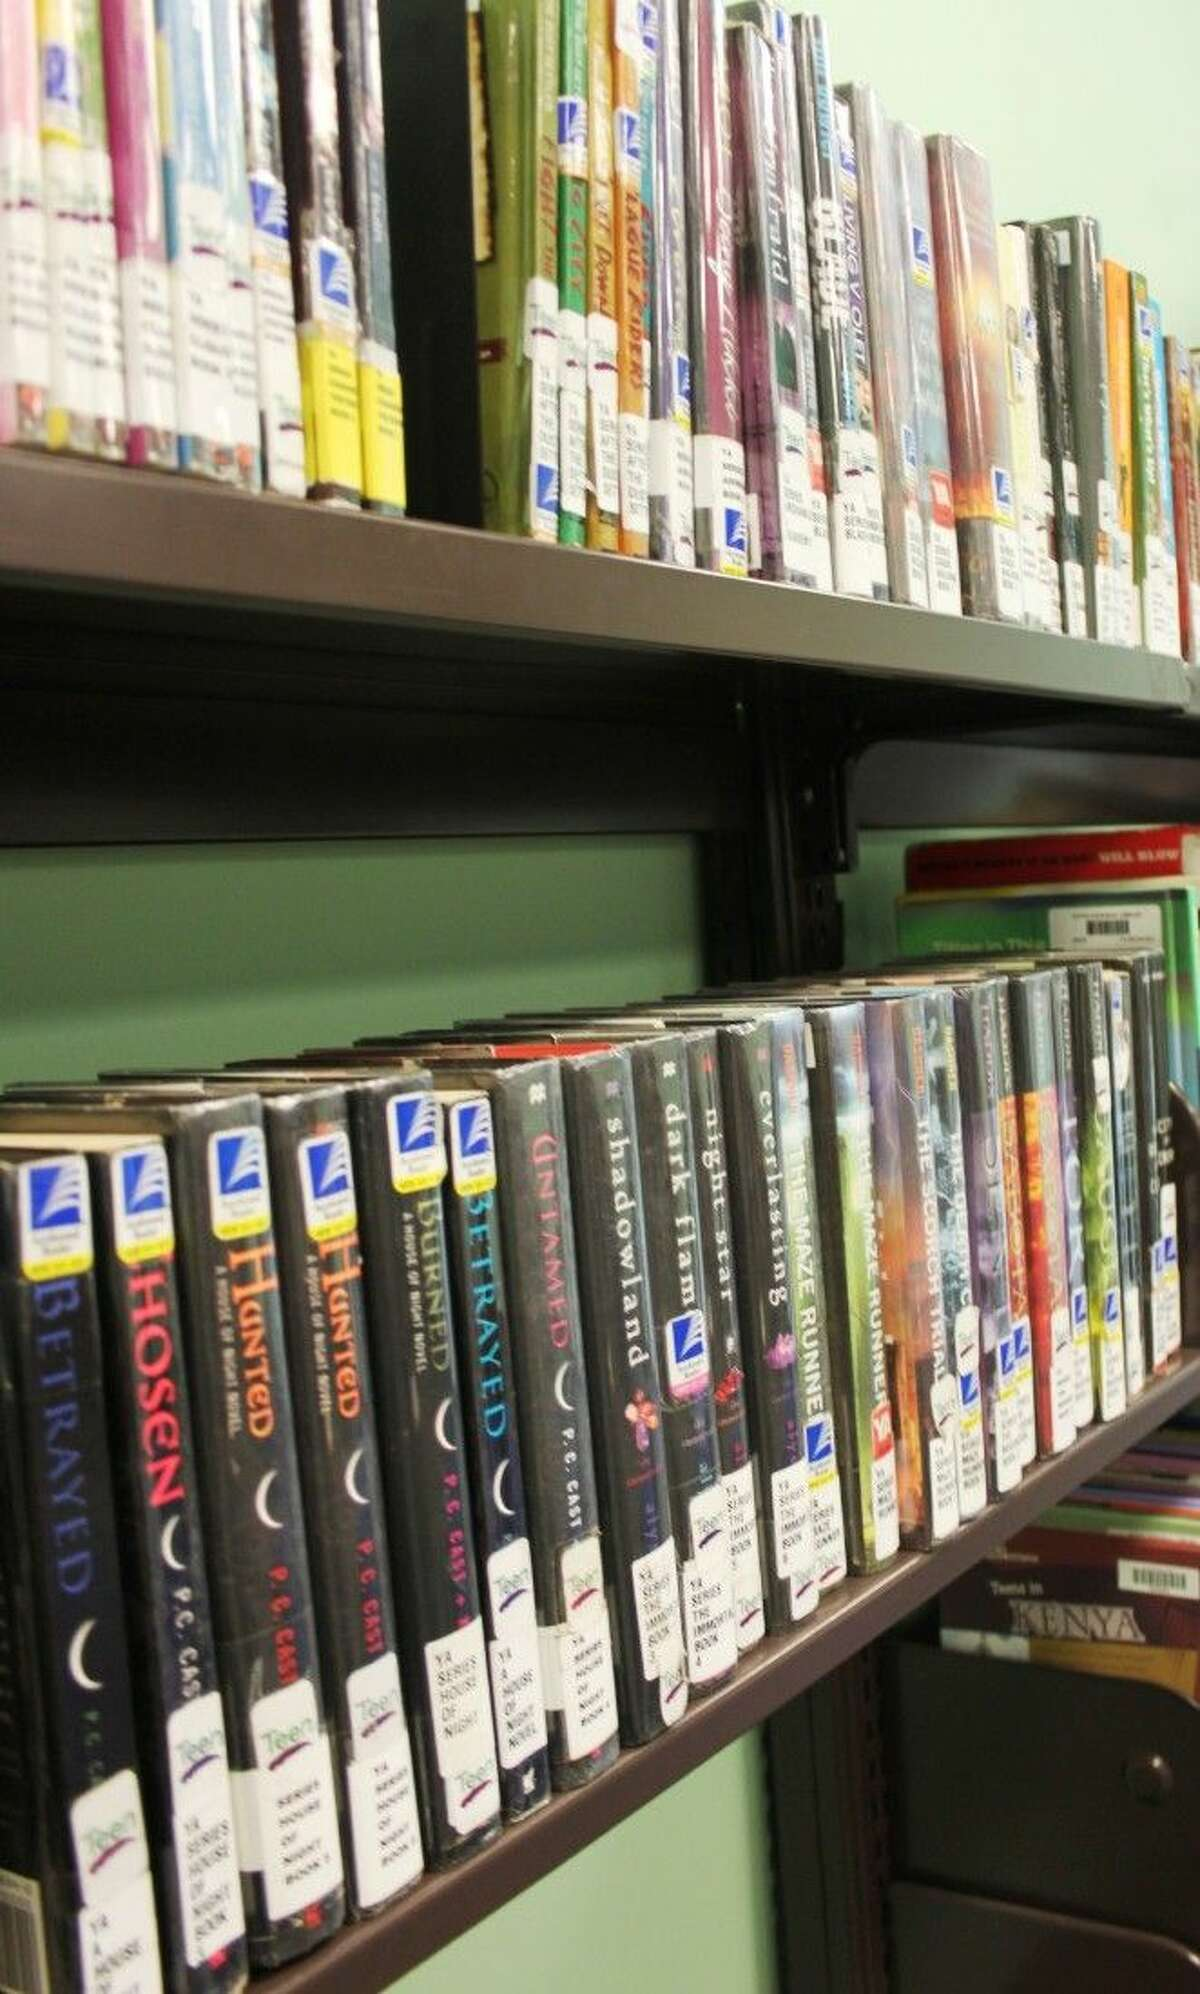 Books that deal in occult or have vampire characters are being questioned by Shepherd minister, Phillip Missick, who is circulating a petition to have certain books removed from the teen section at Austin Memorial Library in Cleveland.